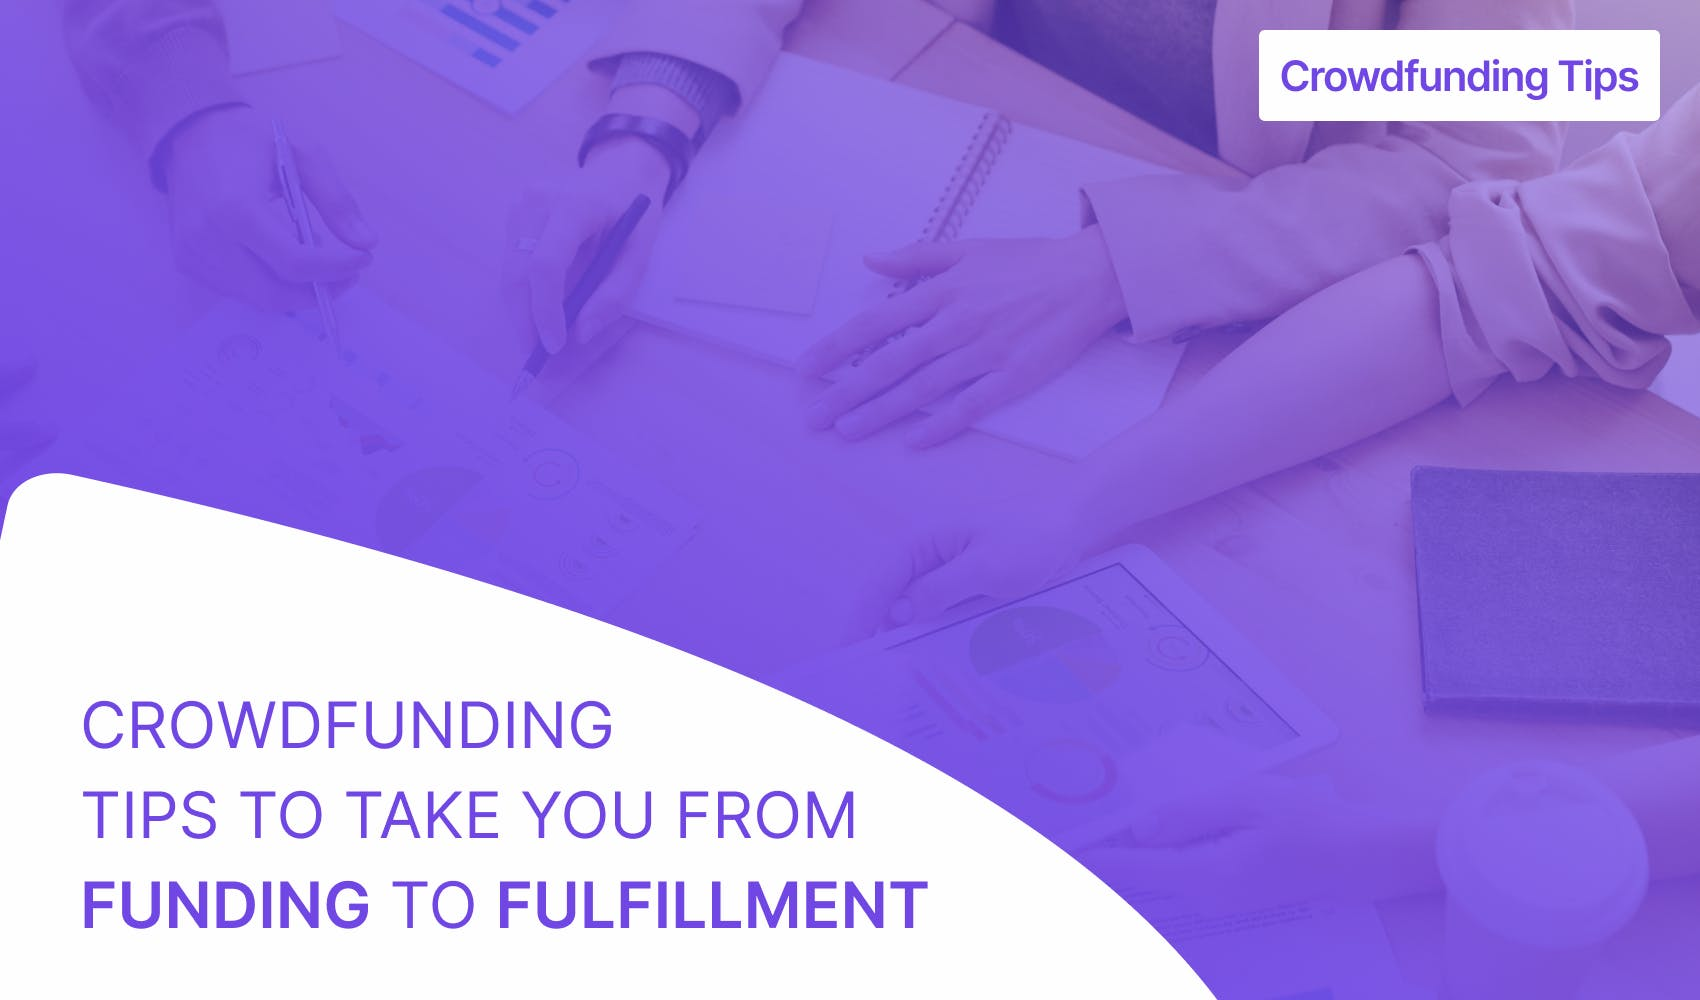 Crowdfunding fulfillment